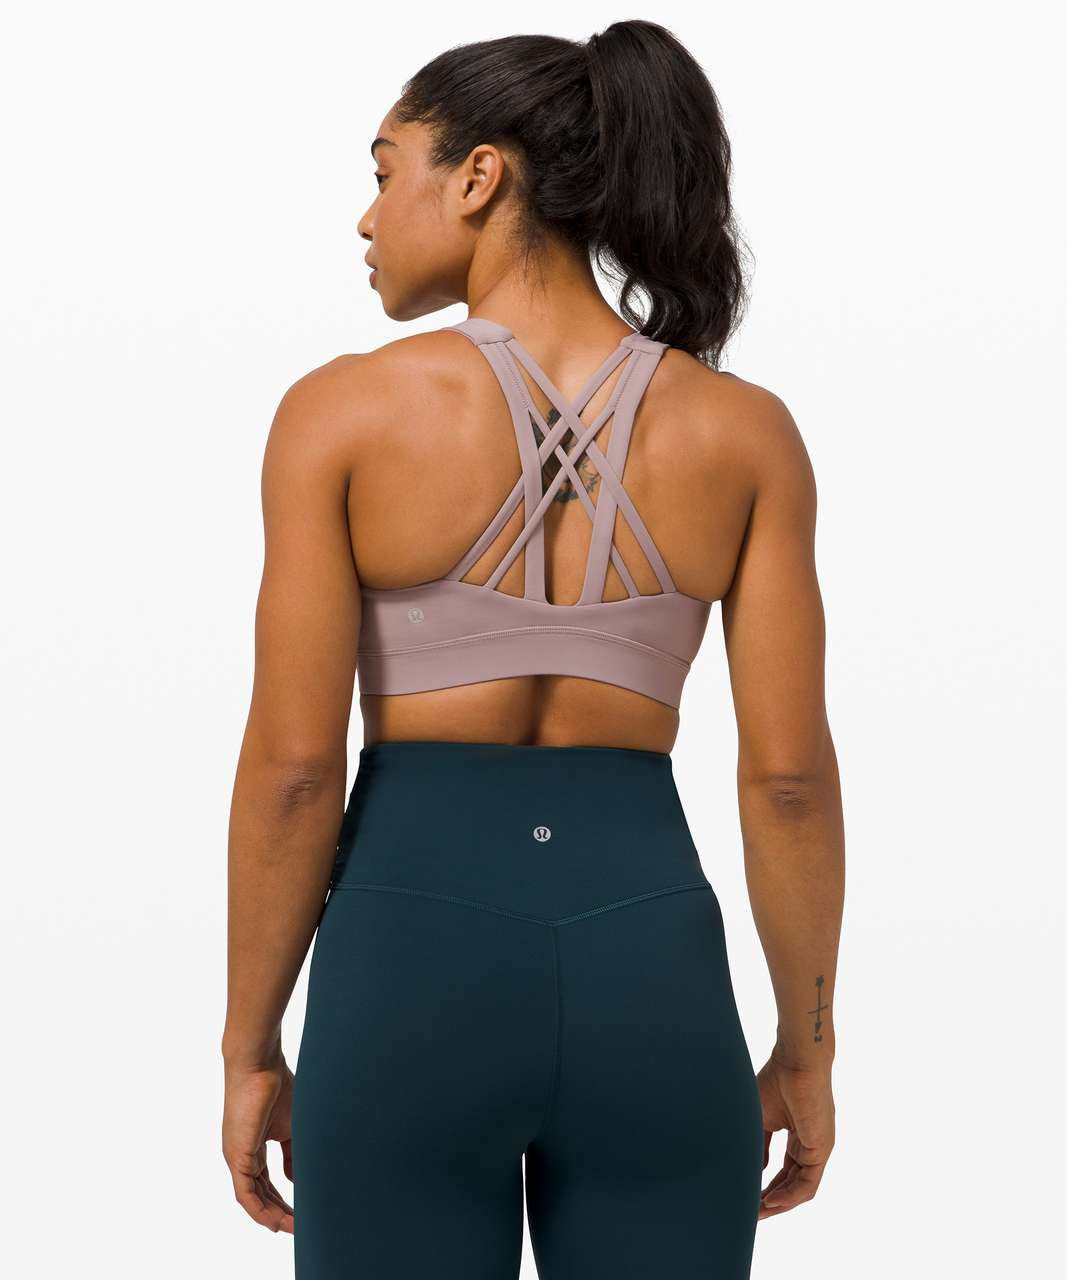 Lululemon Free To Be Elevated Bra *Light Support, DD/E Cup - Violet Verbena